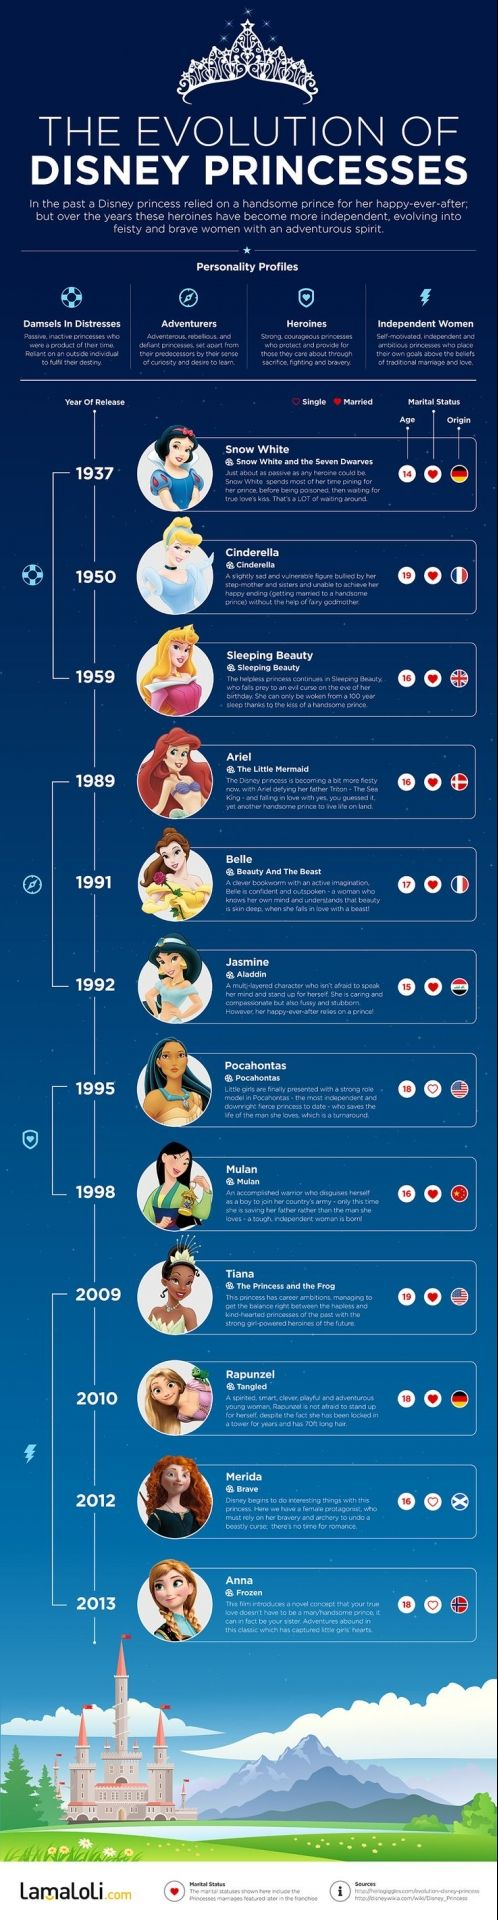 The infographic of the day: the evolution of the Disney princesses' personality the infographic of the day: the evolution of the disney princesses' personality … The post The infographic of the day: the evolution of the Disney princesses' personality appeared first on Paris Disneyland Pictures.